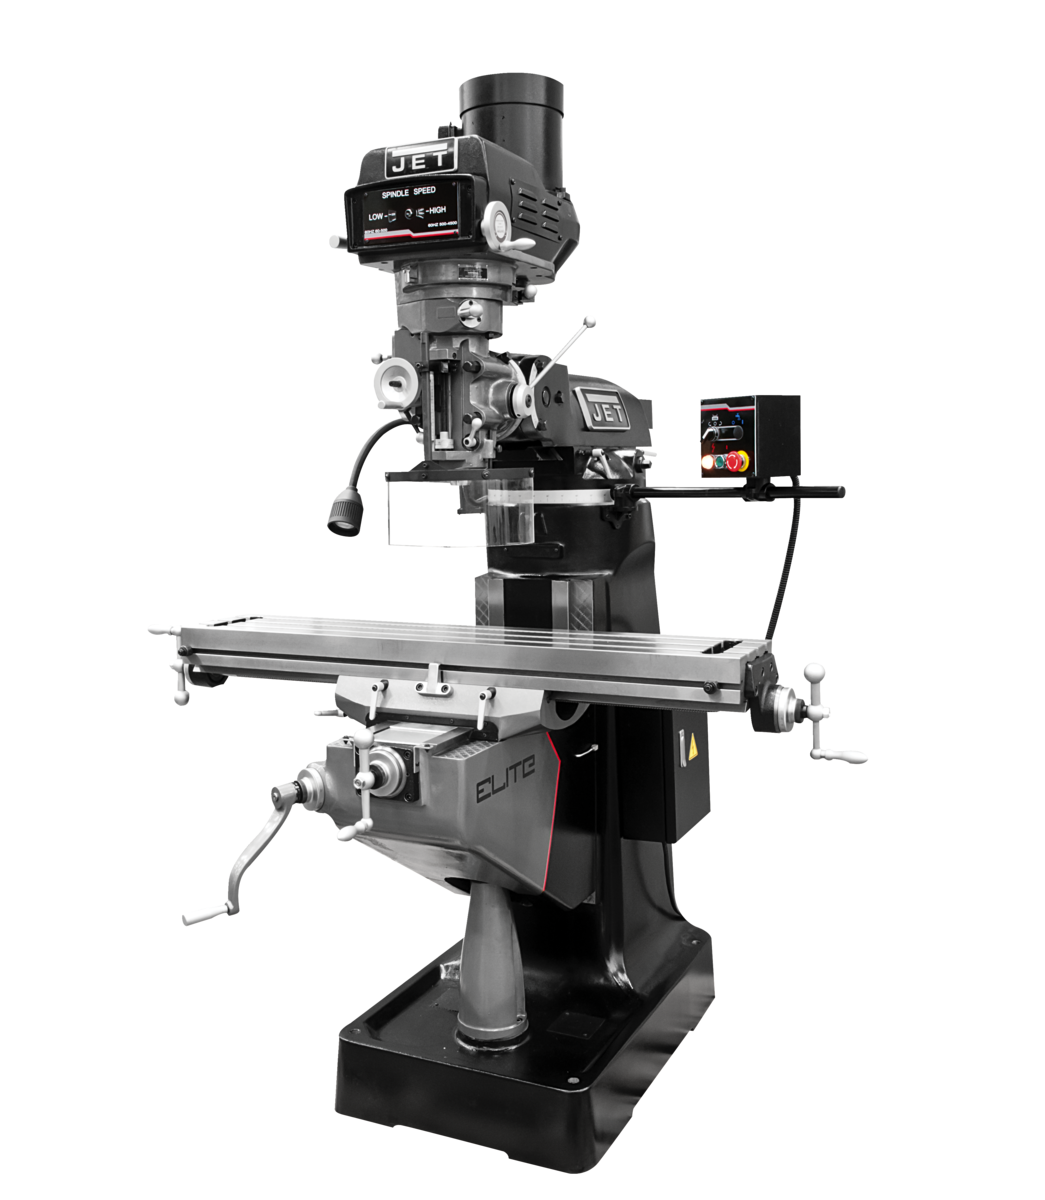 ETM-949 Mill with Servo X, Y, Z-Axis Powerfeeds and USA Air Powered Draw Bar